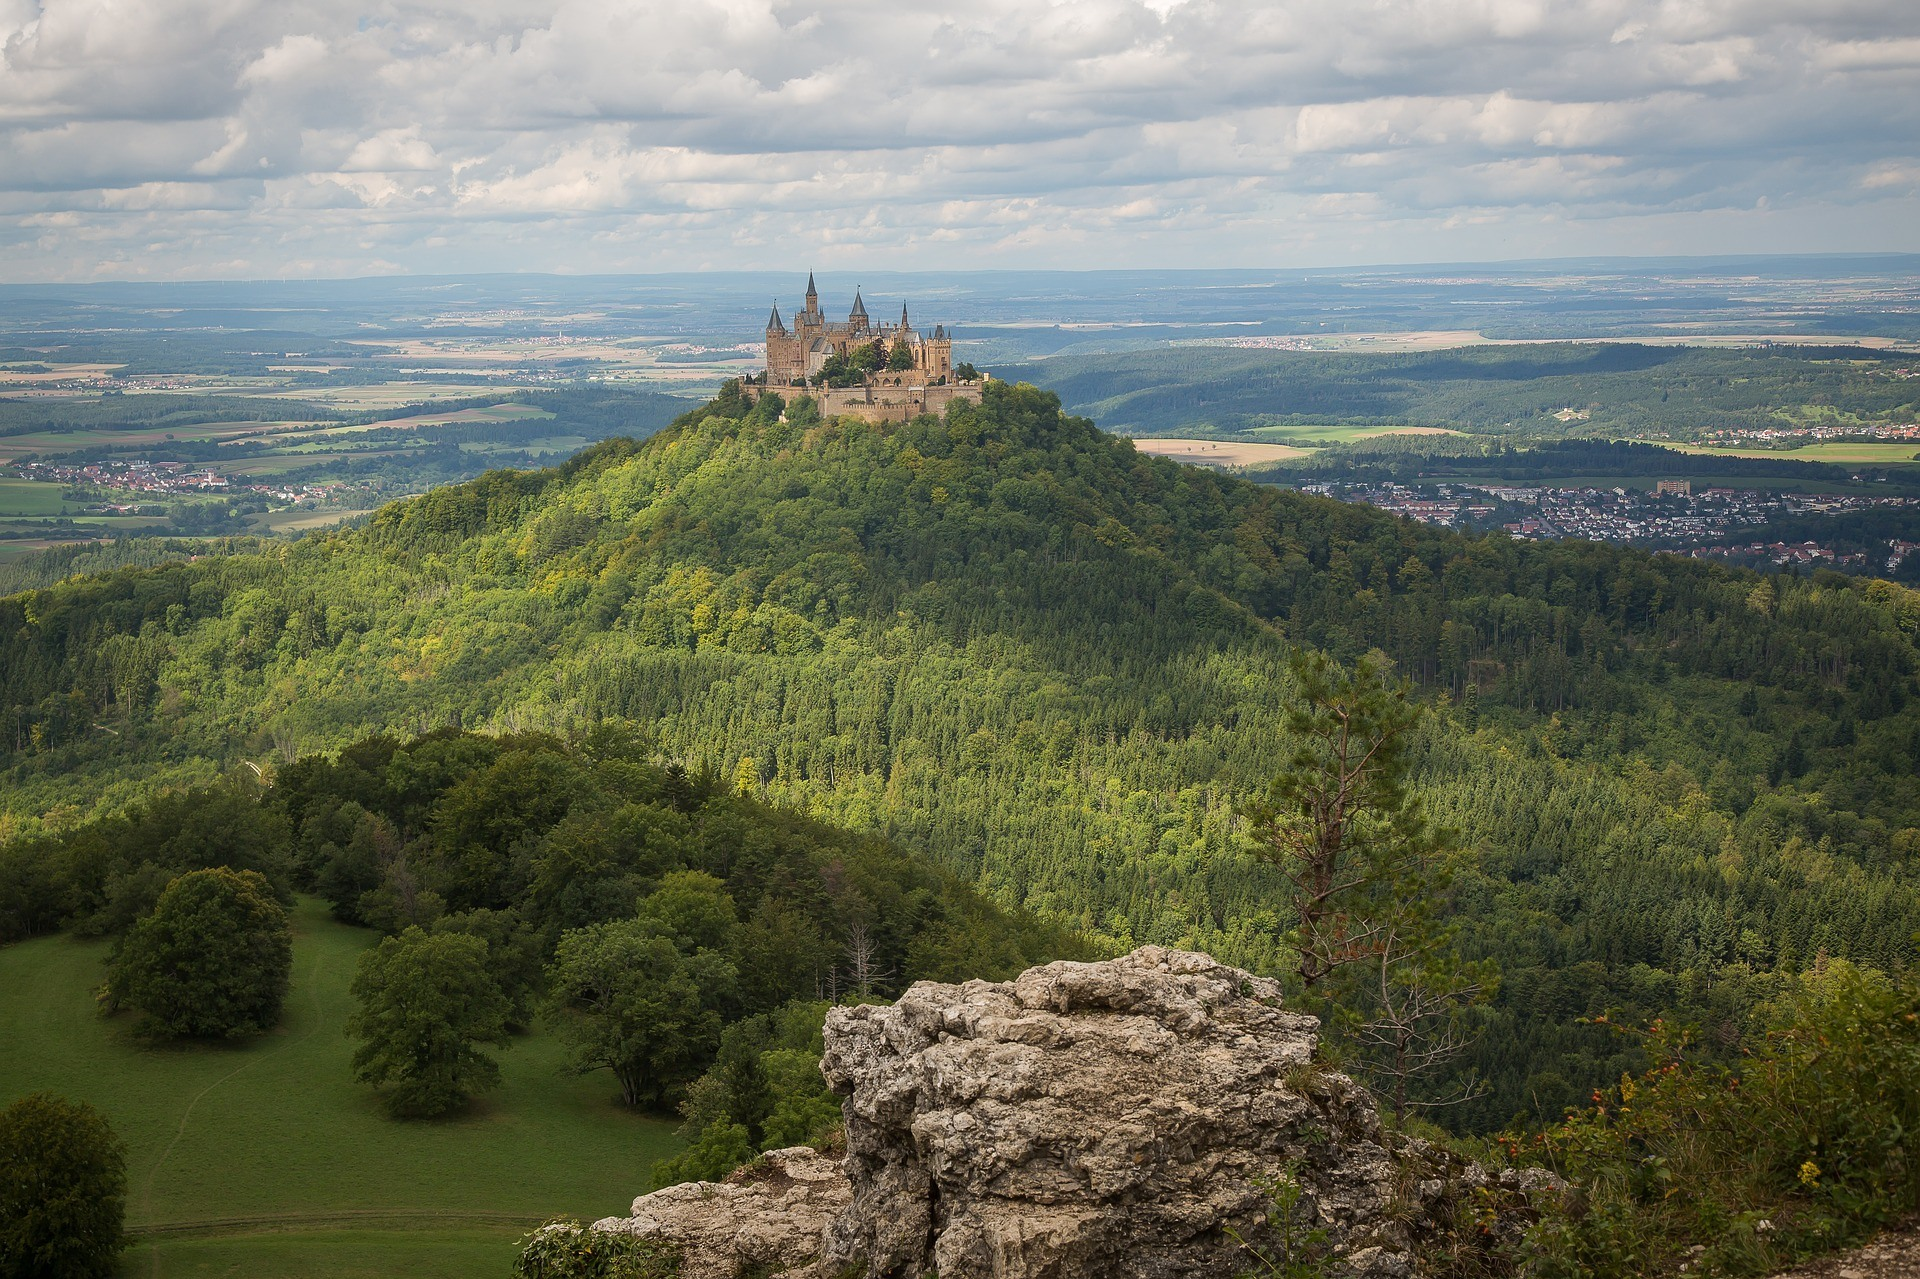 Hohenzollern Castle in Germany Photo Maxmann on Pixabay